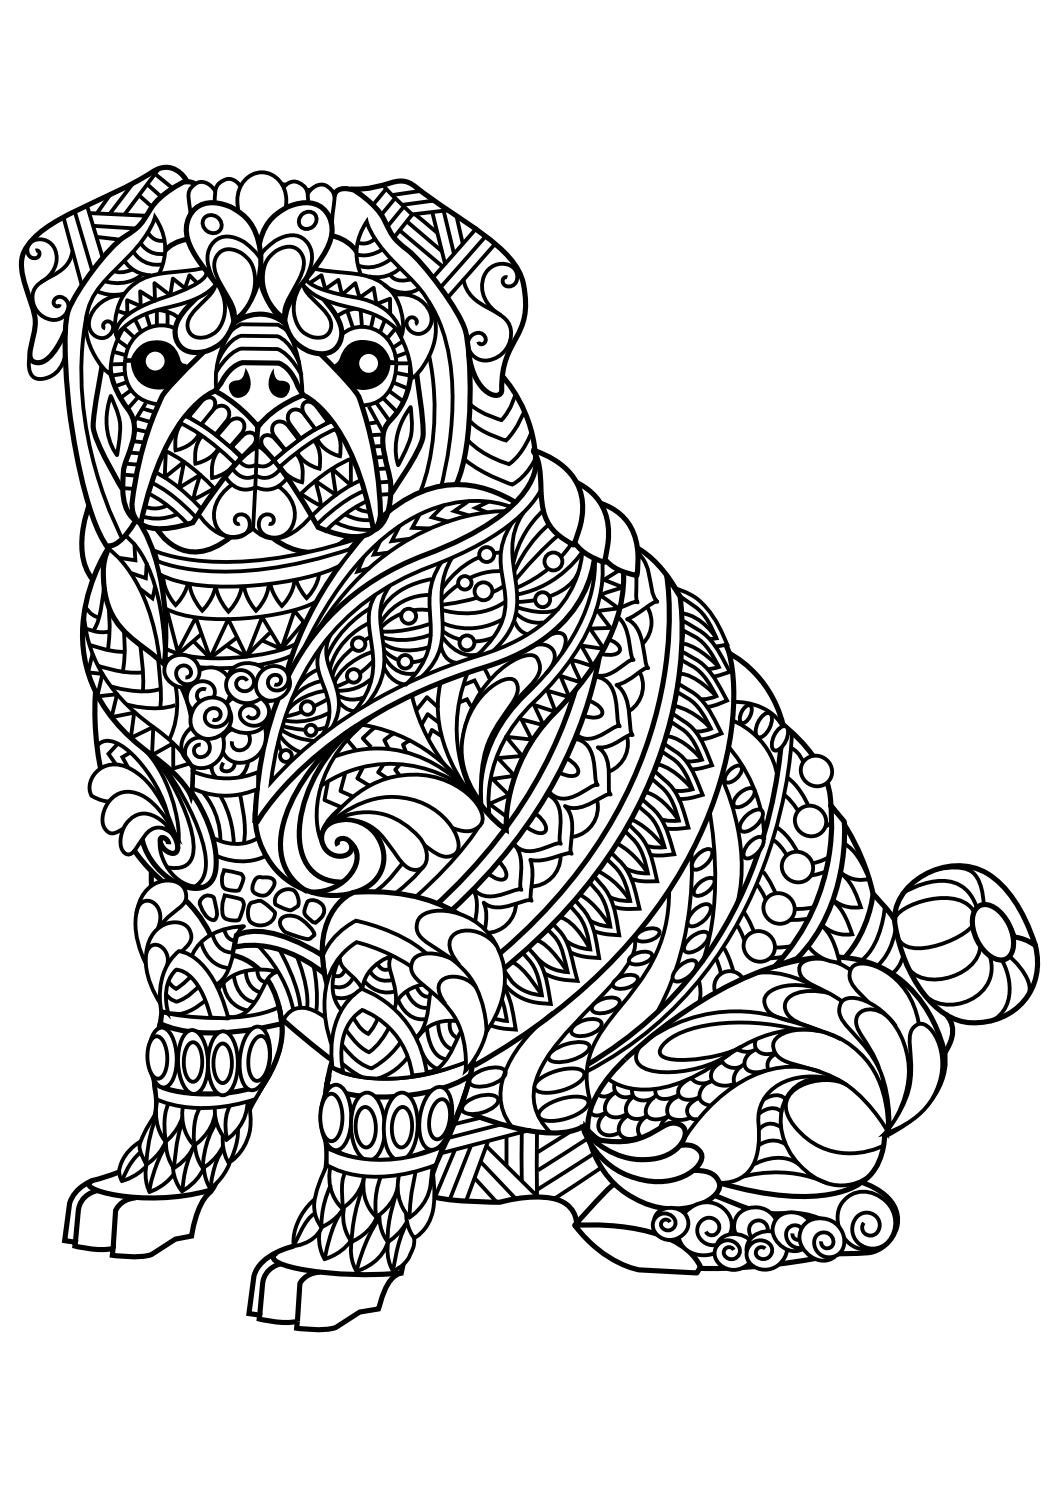 Hurricane Coloring Pages At Getdrawings Com Free For Personal Use